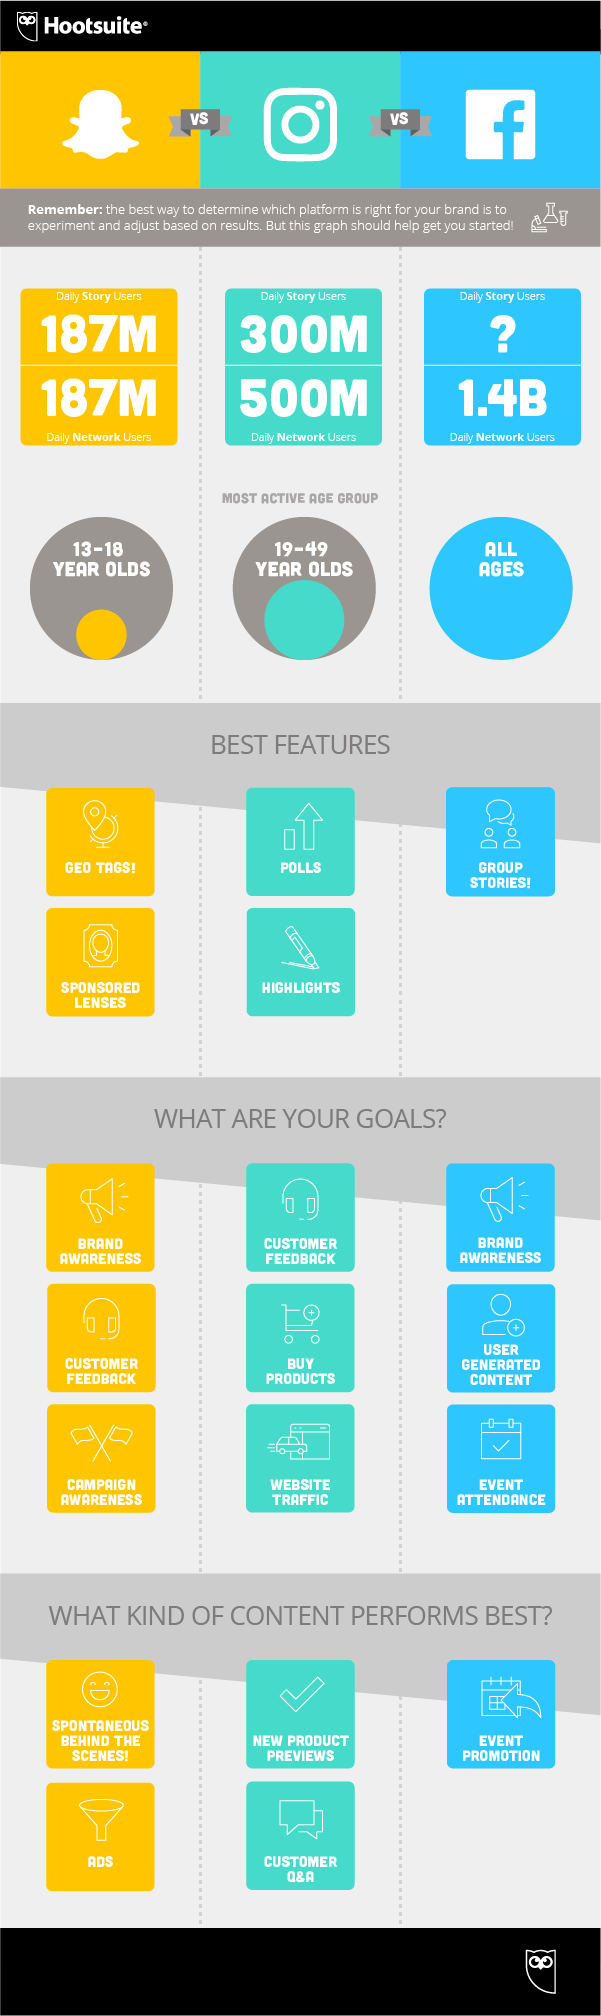 Which Social Media Stories Option is Best for Your Brand? [Infographic]